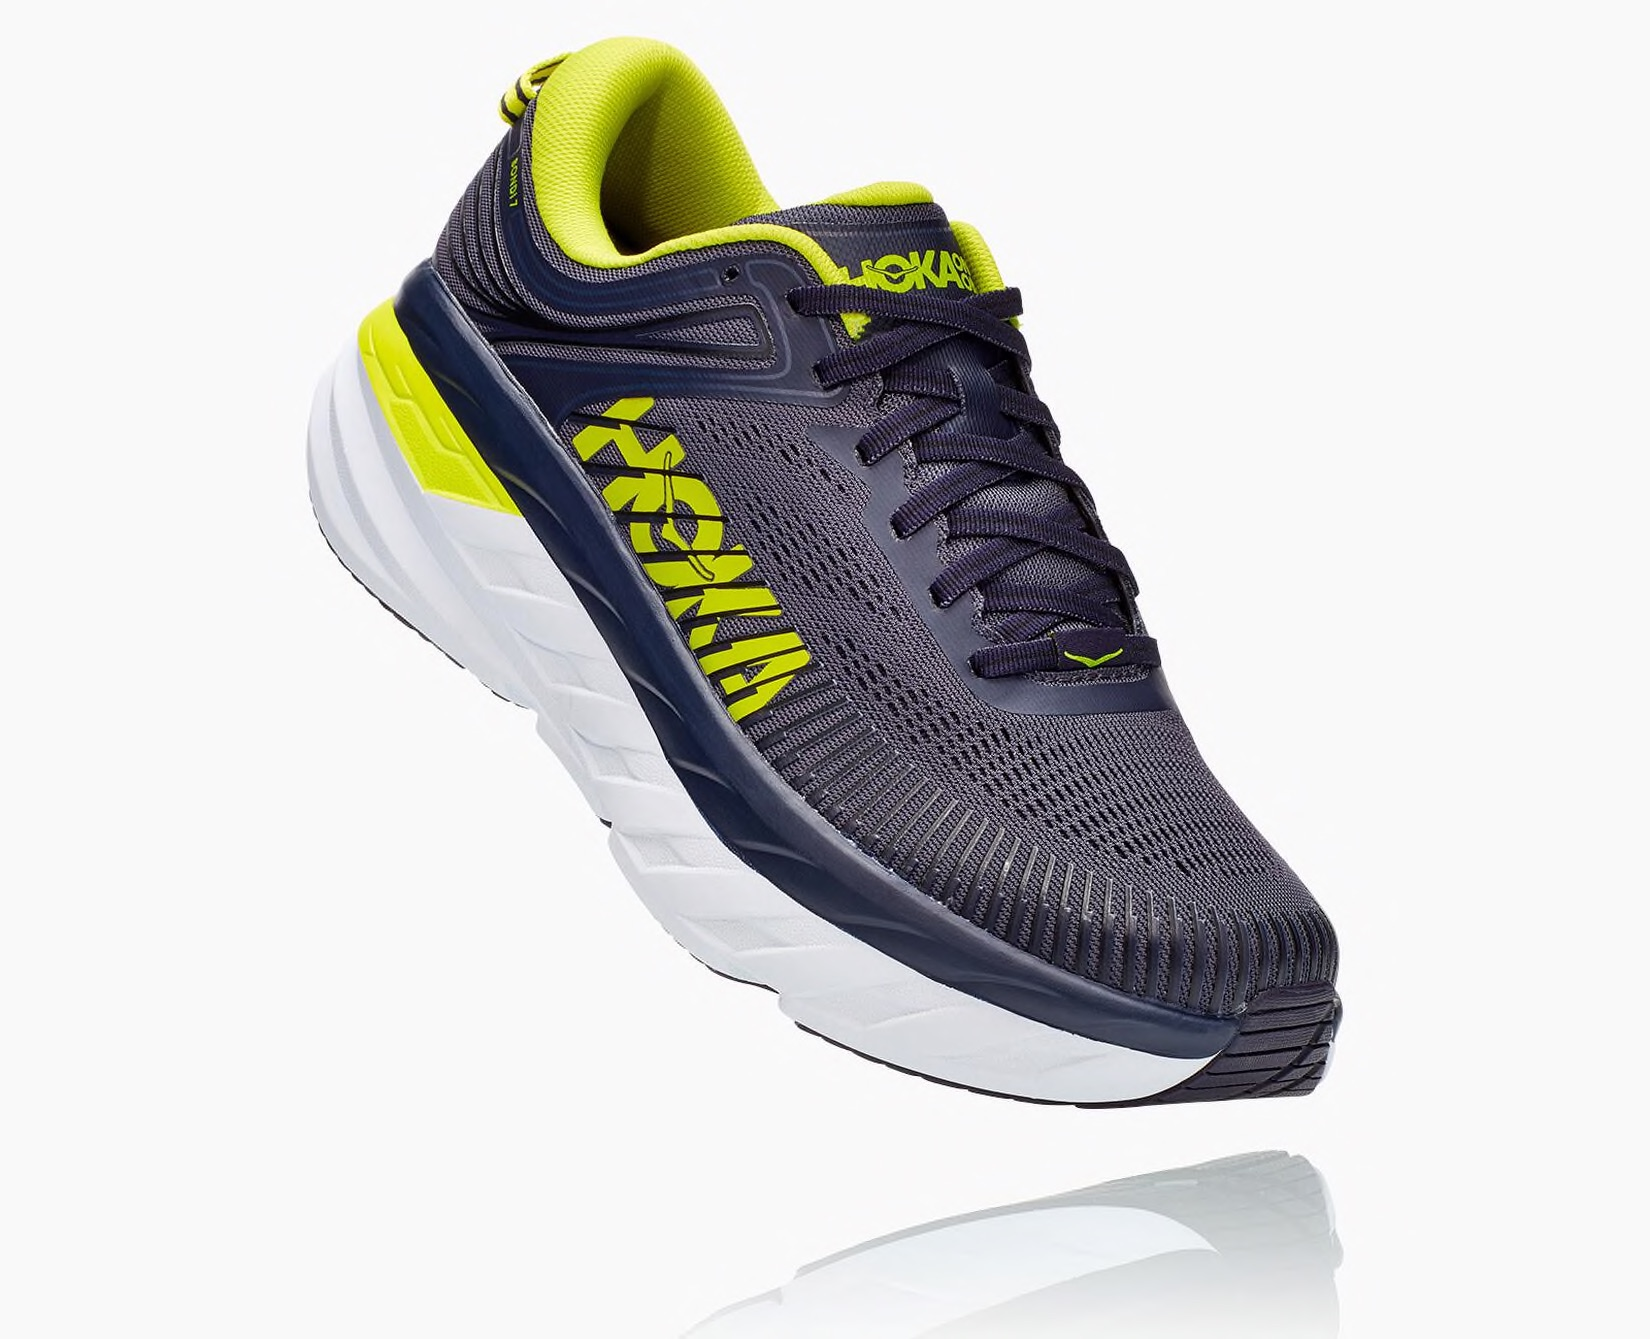 Hoka Bondi 7 - Men's